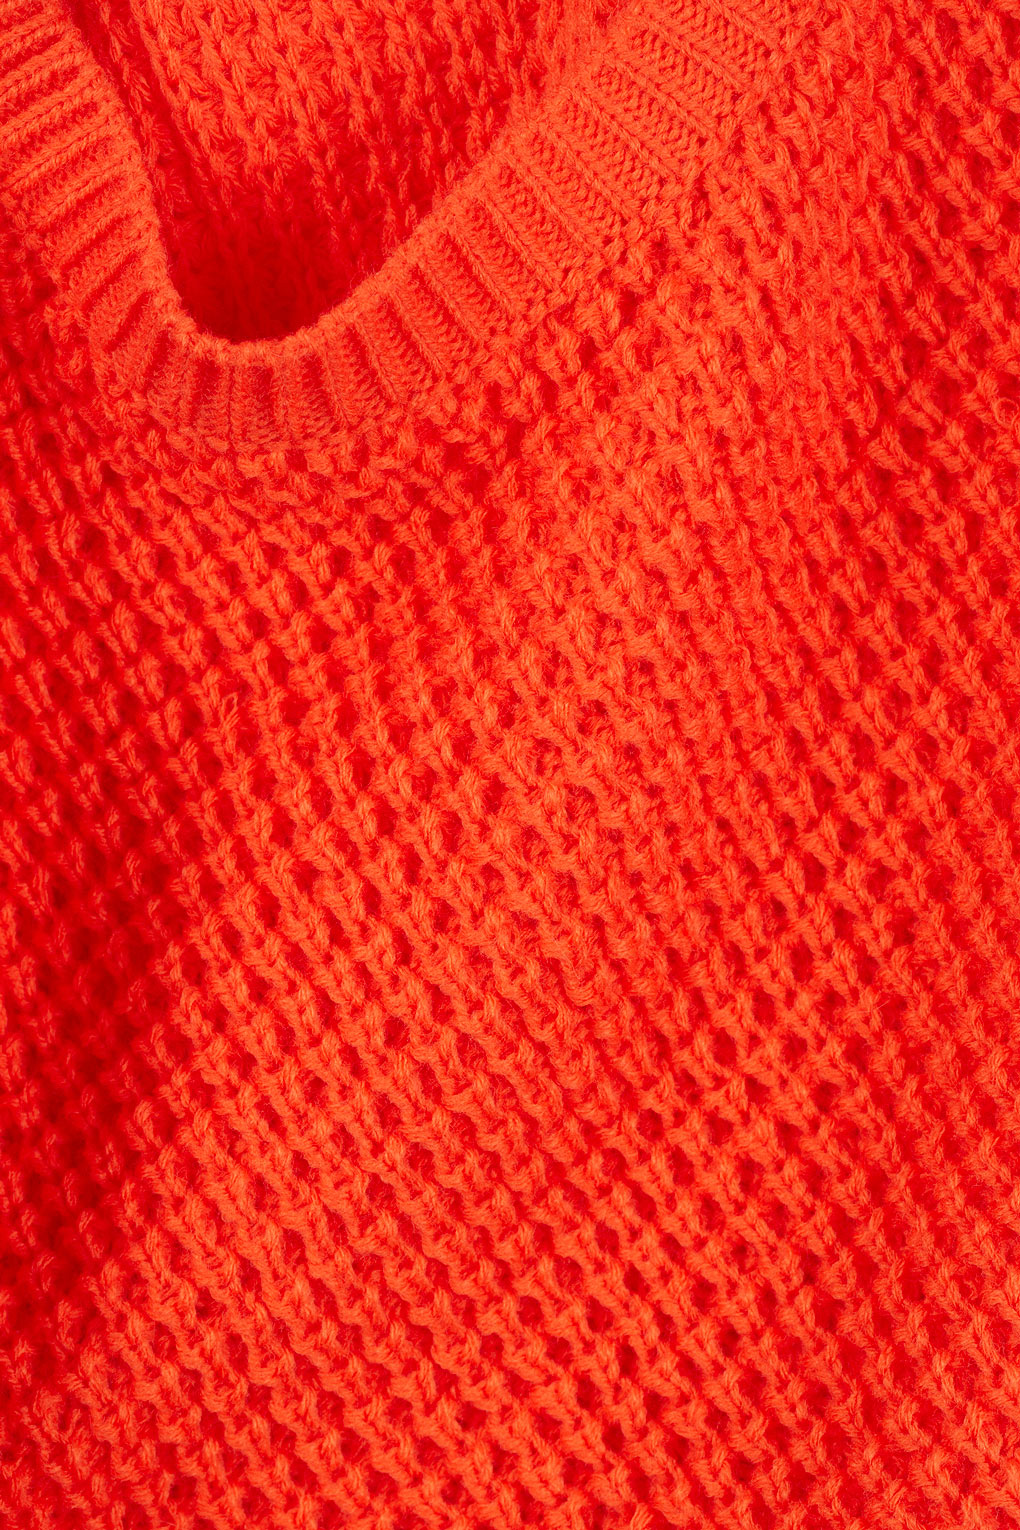 Topshop Knitted Textured Stitch Jumper in Red Lyst